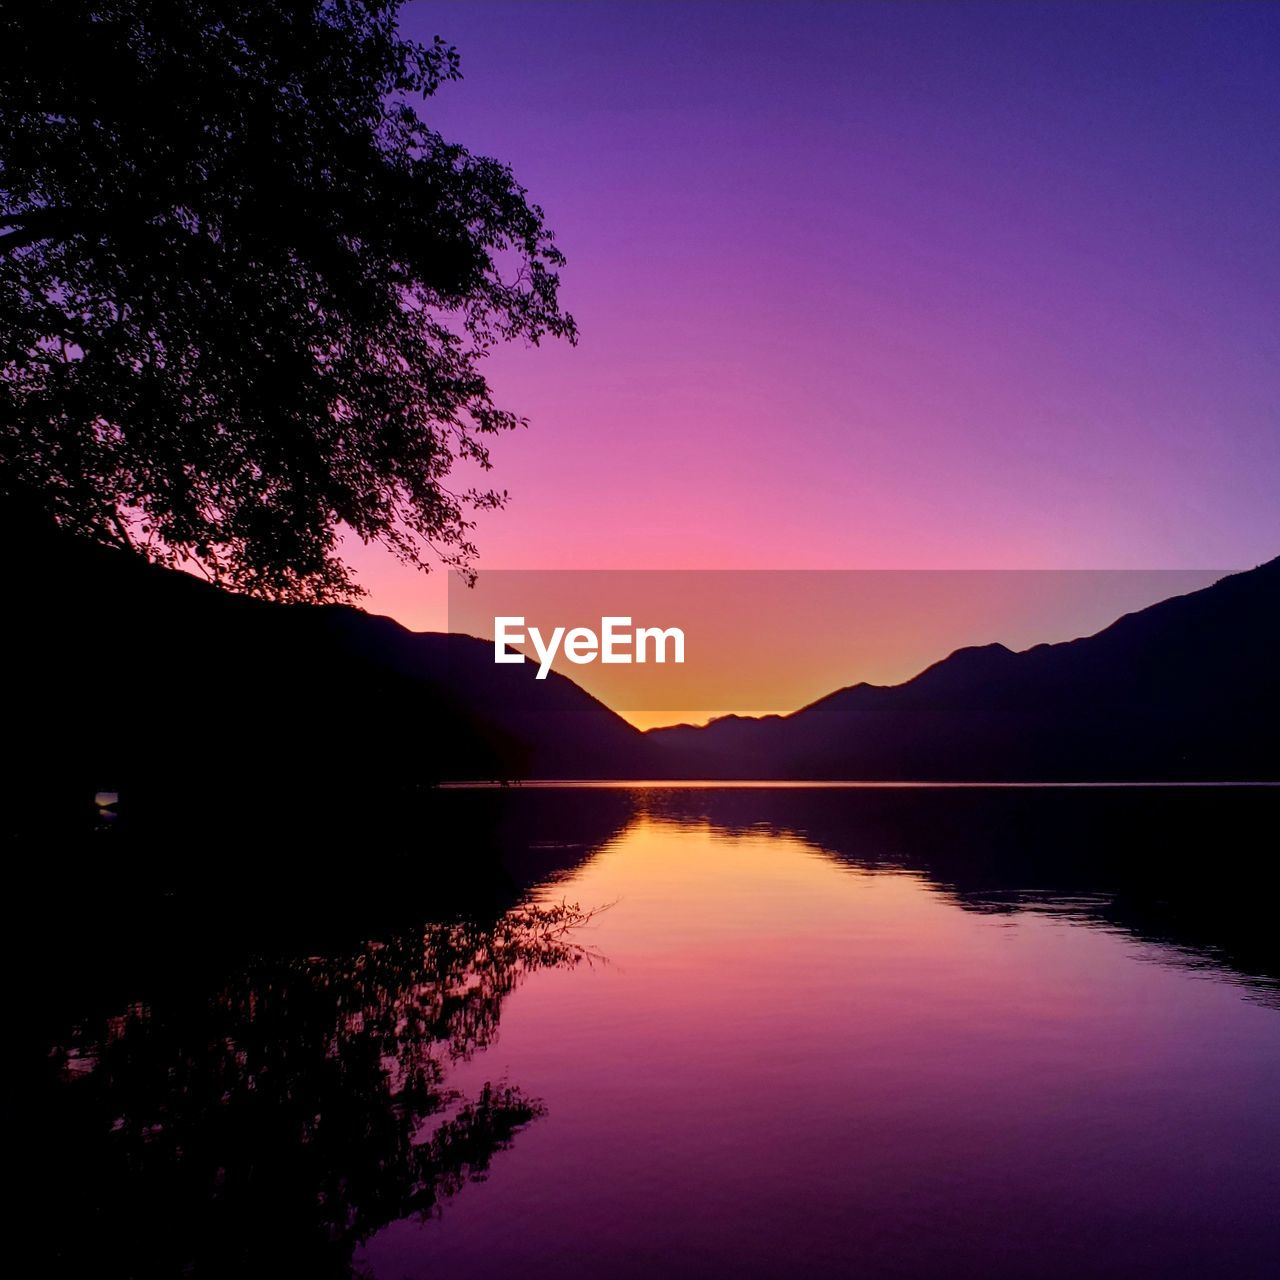 sunset, sky, beauty in nature, water, tranquility, scenics - nature, tranquil scene, reflection, lake, silhouette, tree, mountain, nature, plant, no people, waterfront, idyllic, orange color, purple, outdoors, romantic sky